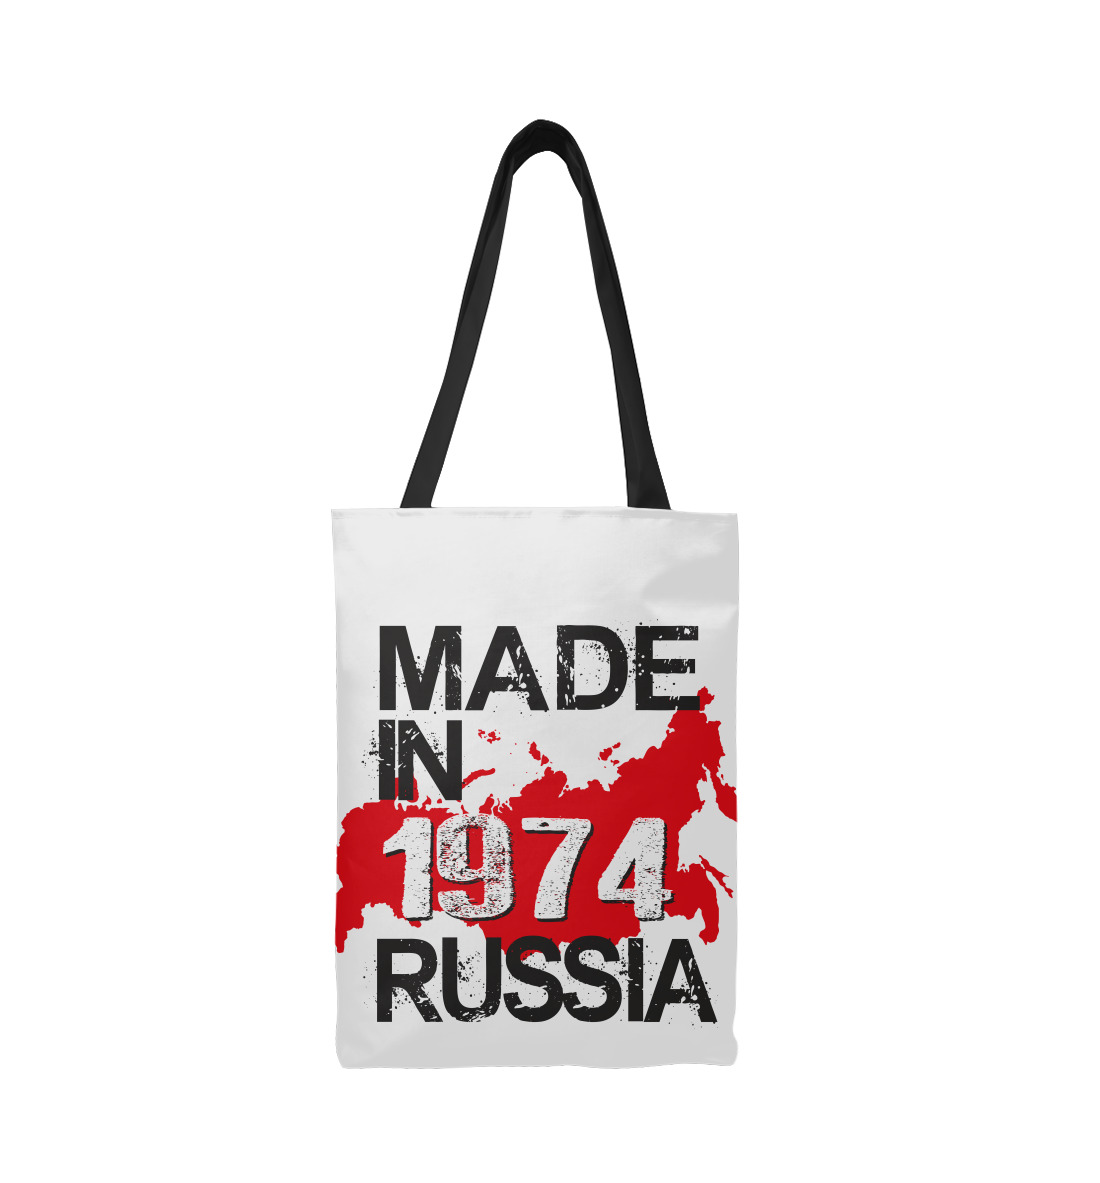 Фото - 1974 made in russia made in russia